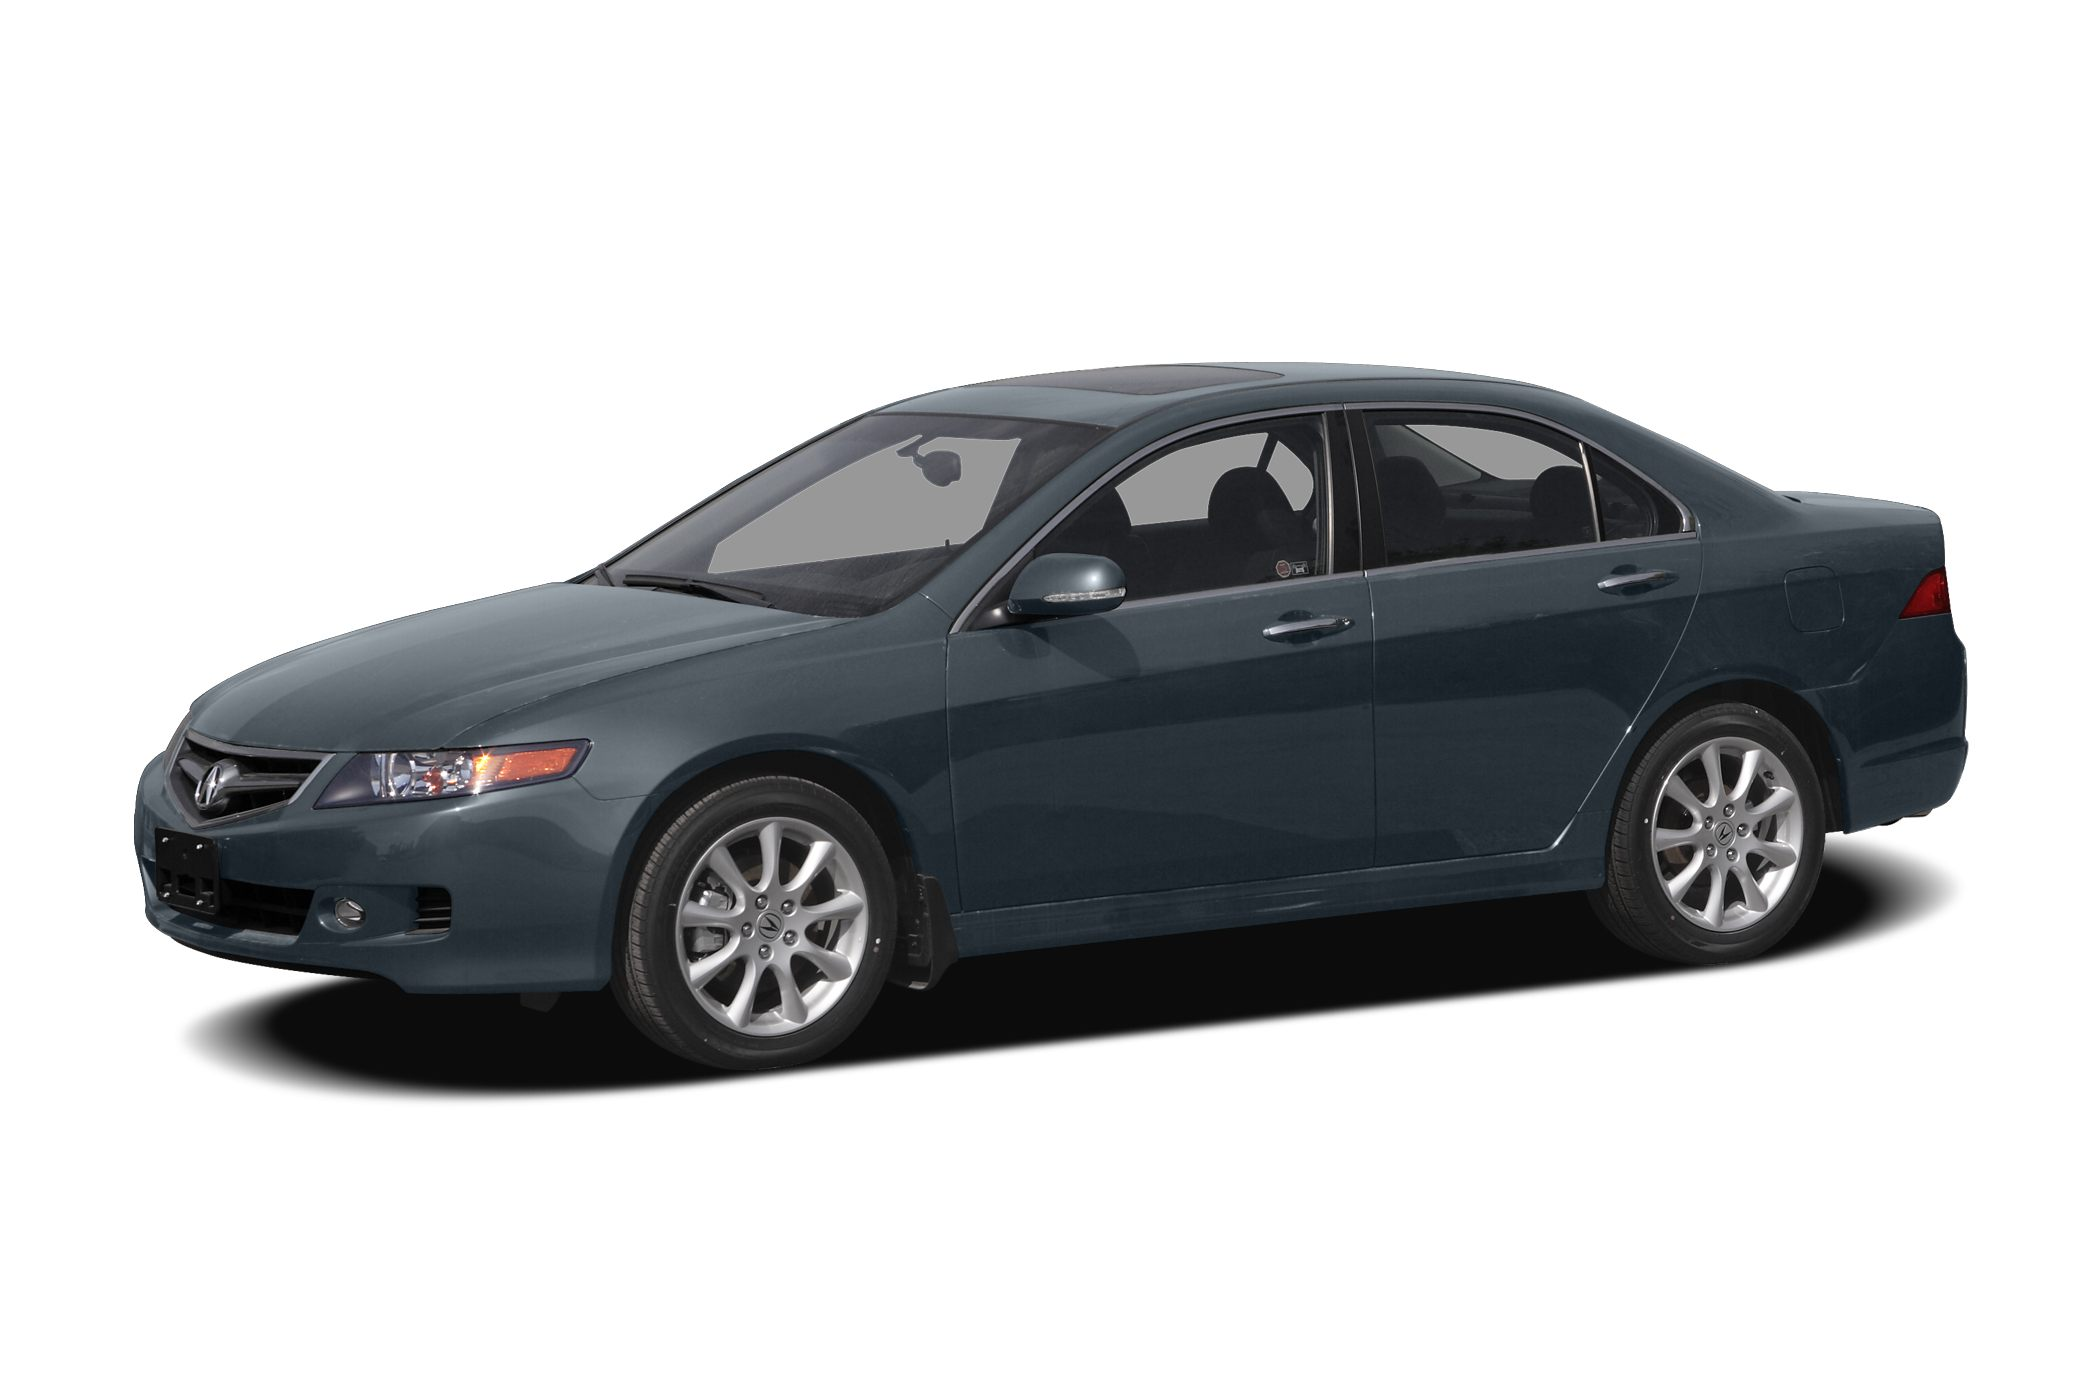 2006 Acura TSX Sedan for sale in San Antonio for $10,995 with 117,219 miles.